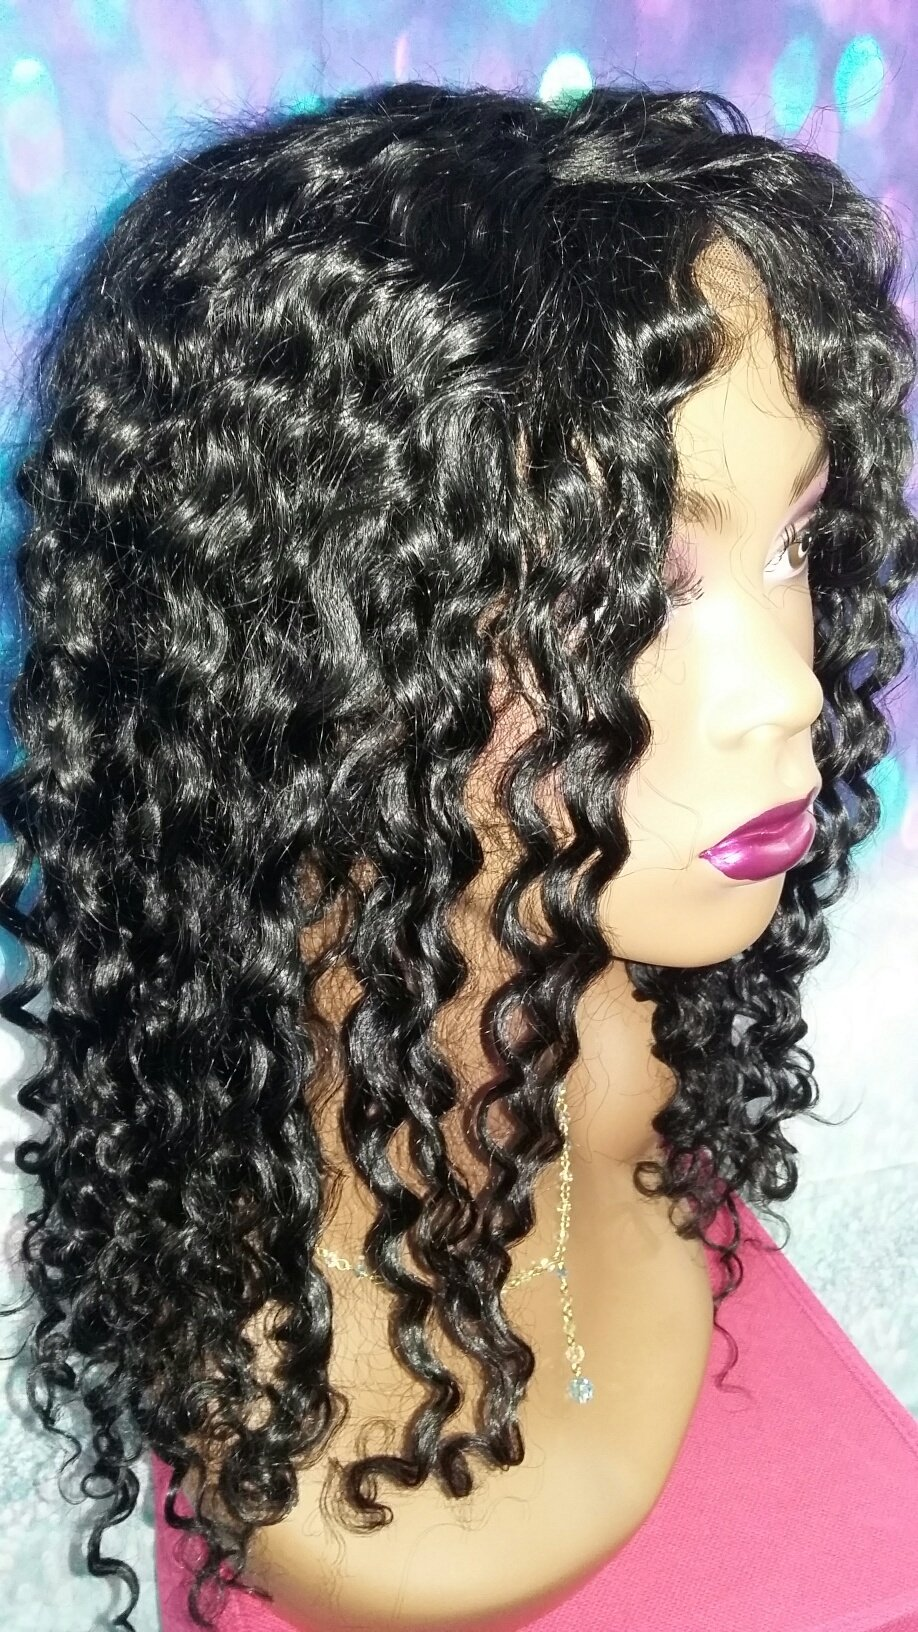 16 INCH INDIAN REMY HUMAN HAIR LACE FRONT FULL WIG GLUELESS DEEP WAVY SMALL